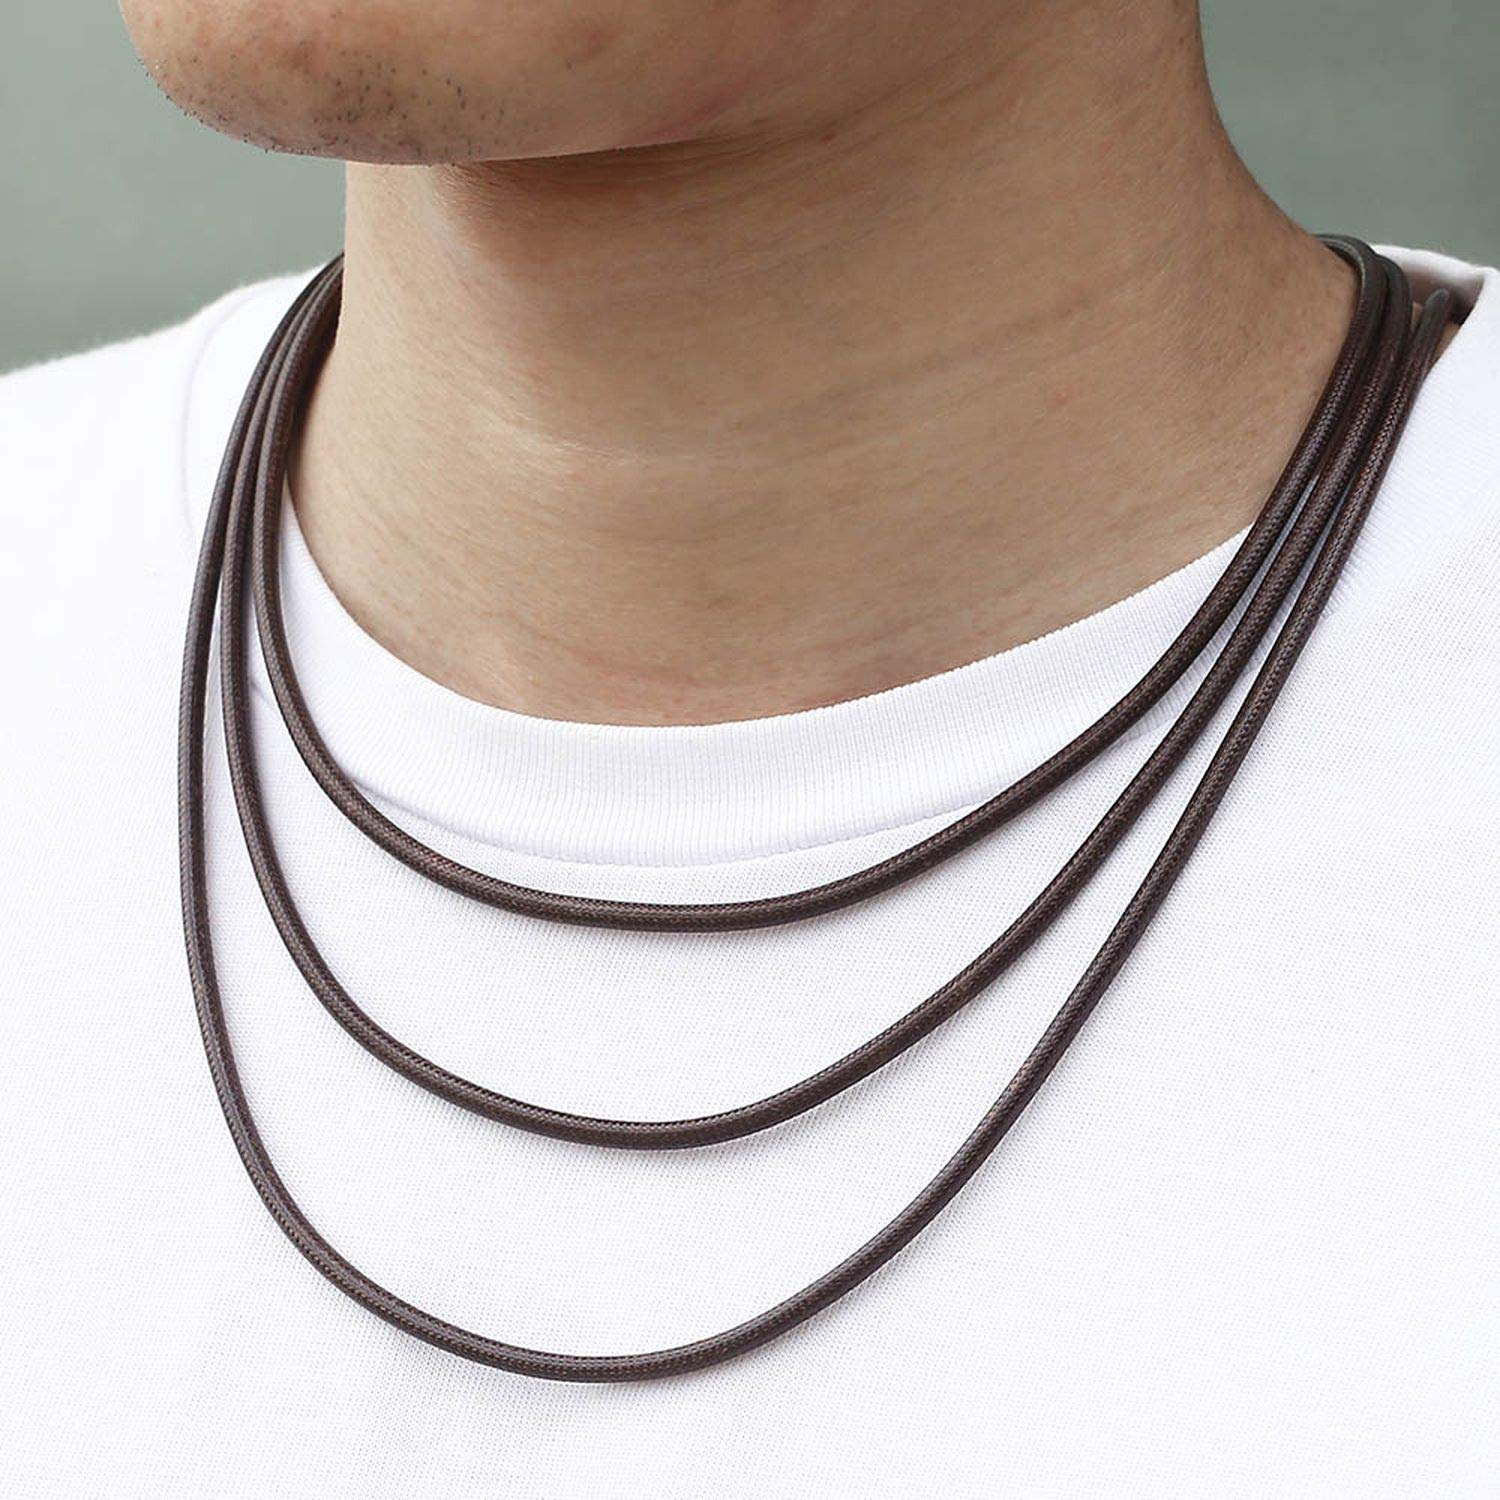 Youthern Brown Black Leather Necklaces for Men Stainless Steel Magnetic Clasp Mens Leather Necklace Jewelry Gifts 3mm